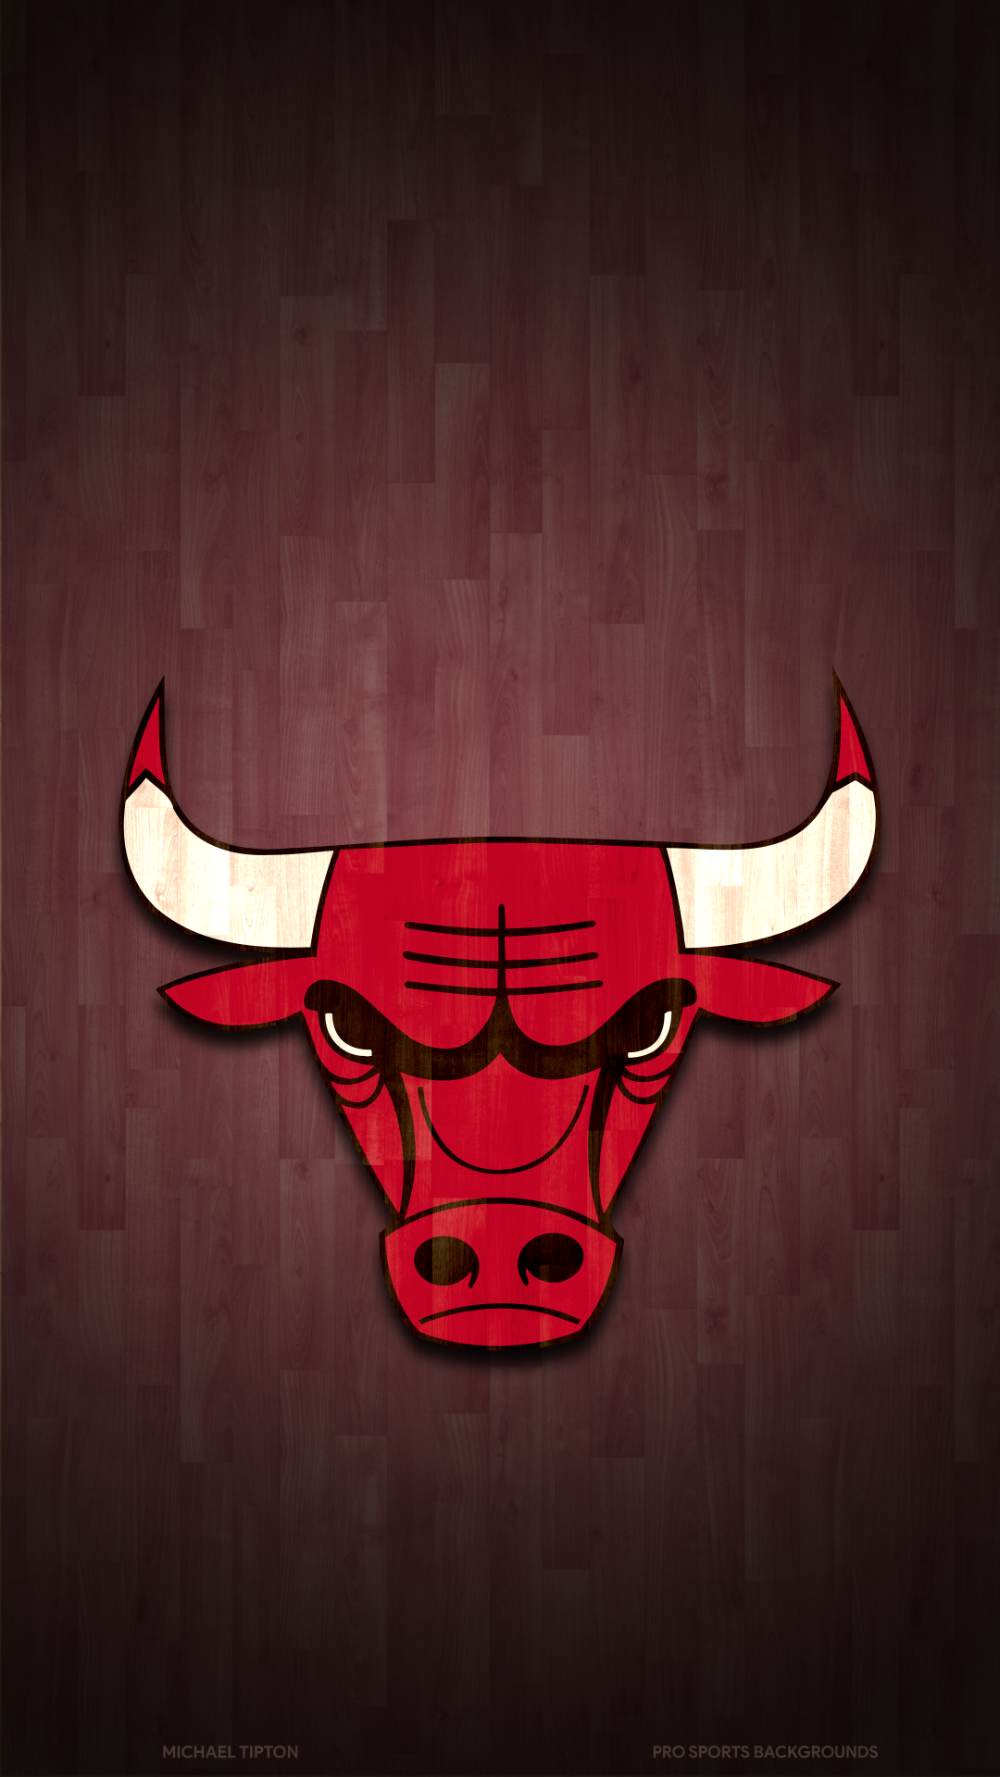 Chicago Bulls Wallpapers Pro Sports Backgrounds Chicago Bulls Wallpaper Bulls Wallpaper Chicago Bulls